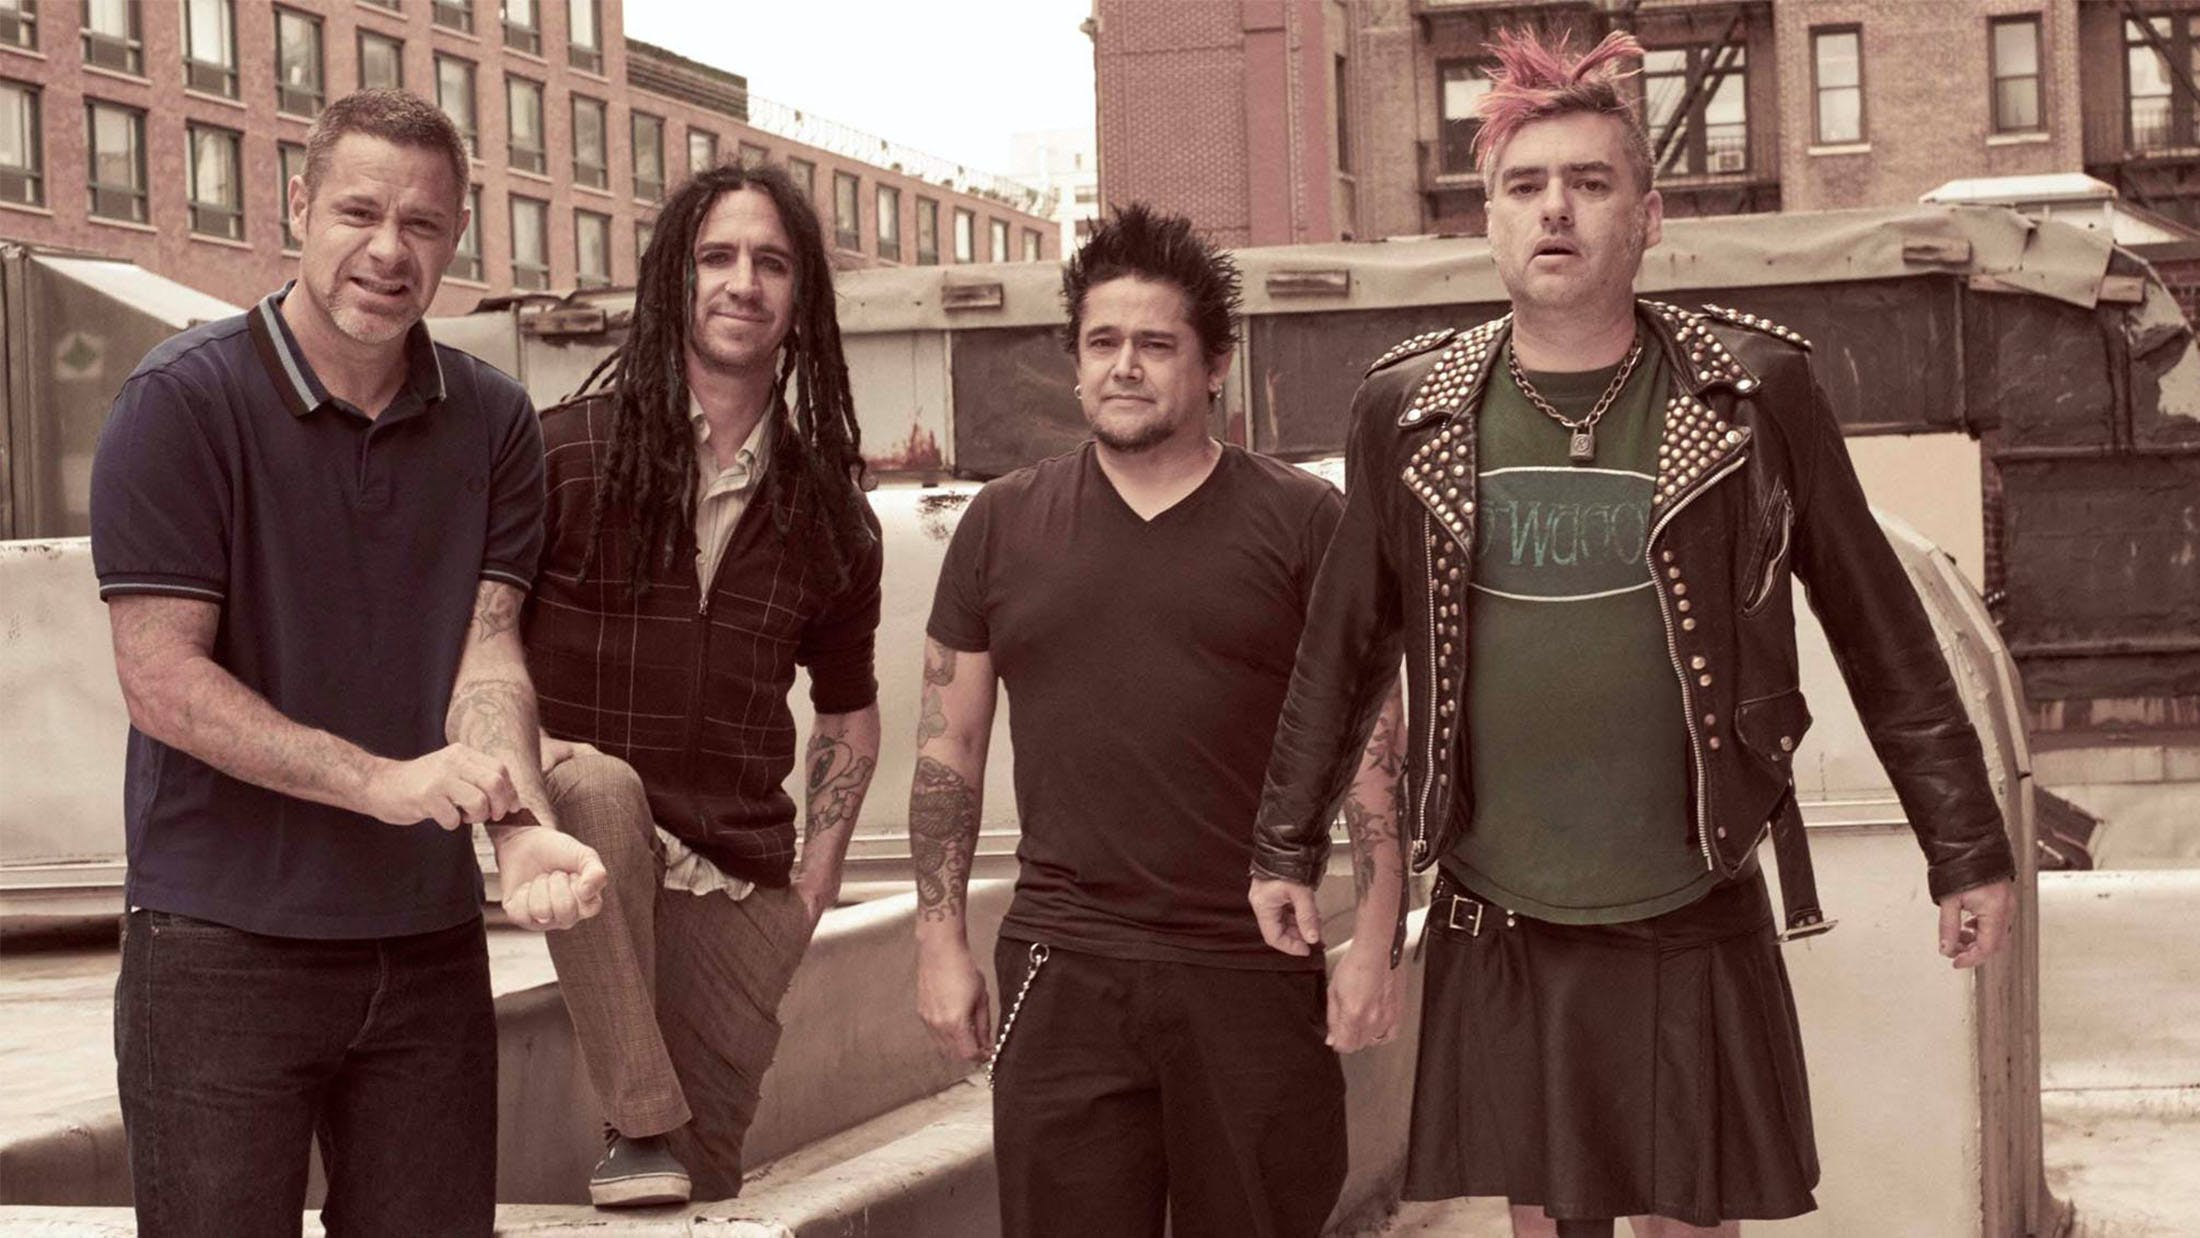 NOFX Release Apology For Joking Onstage About Las Vegas Concert Shooting Victims